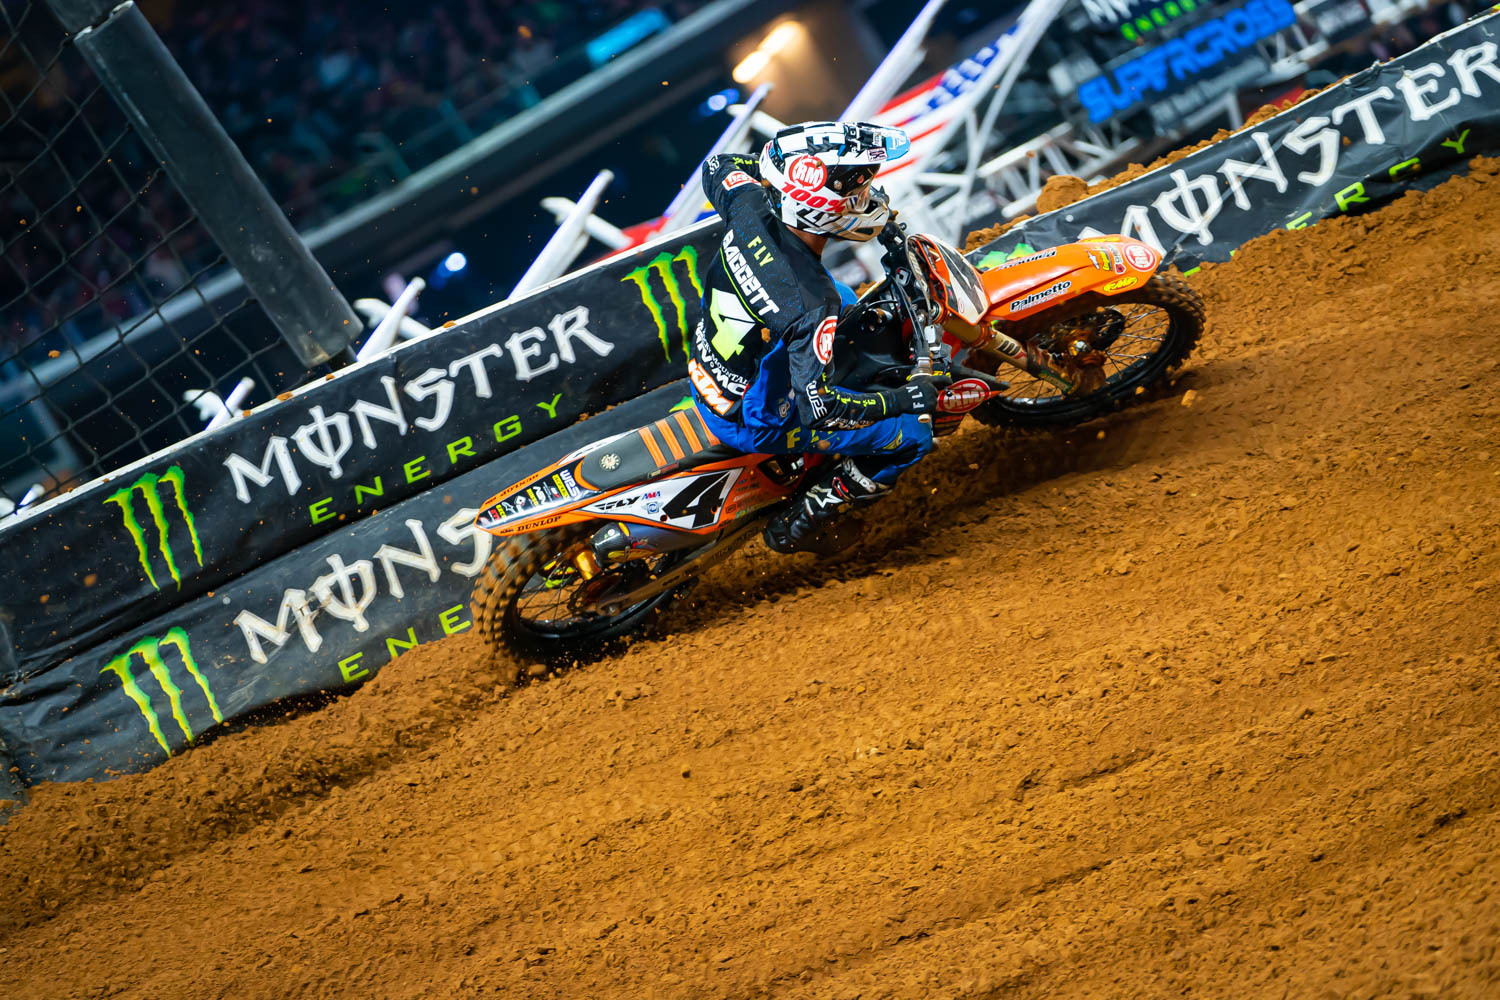 2020-ARLINGTON-SUPERCROSS_KICKSTART_0070